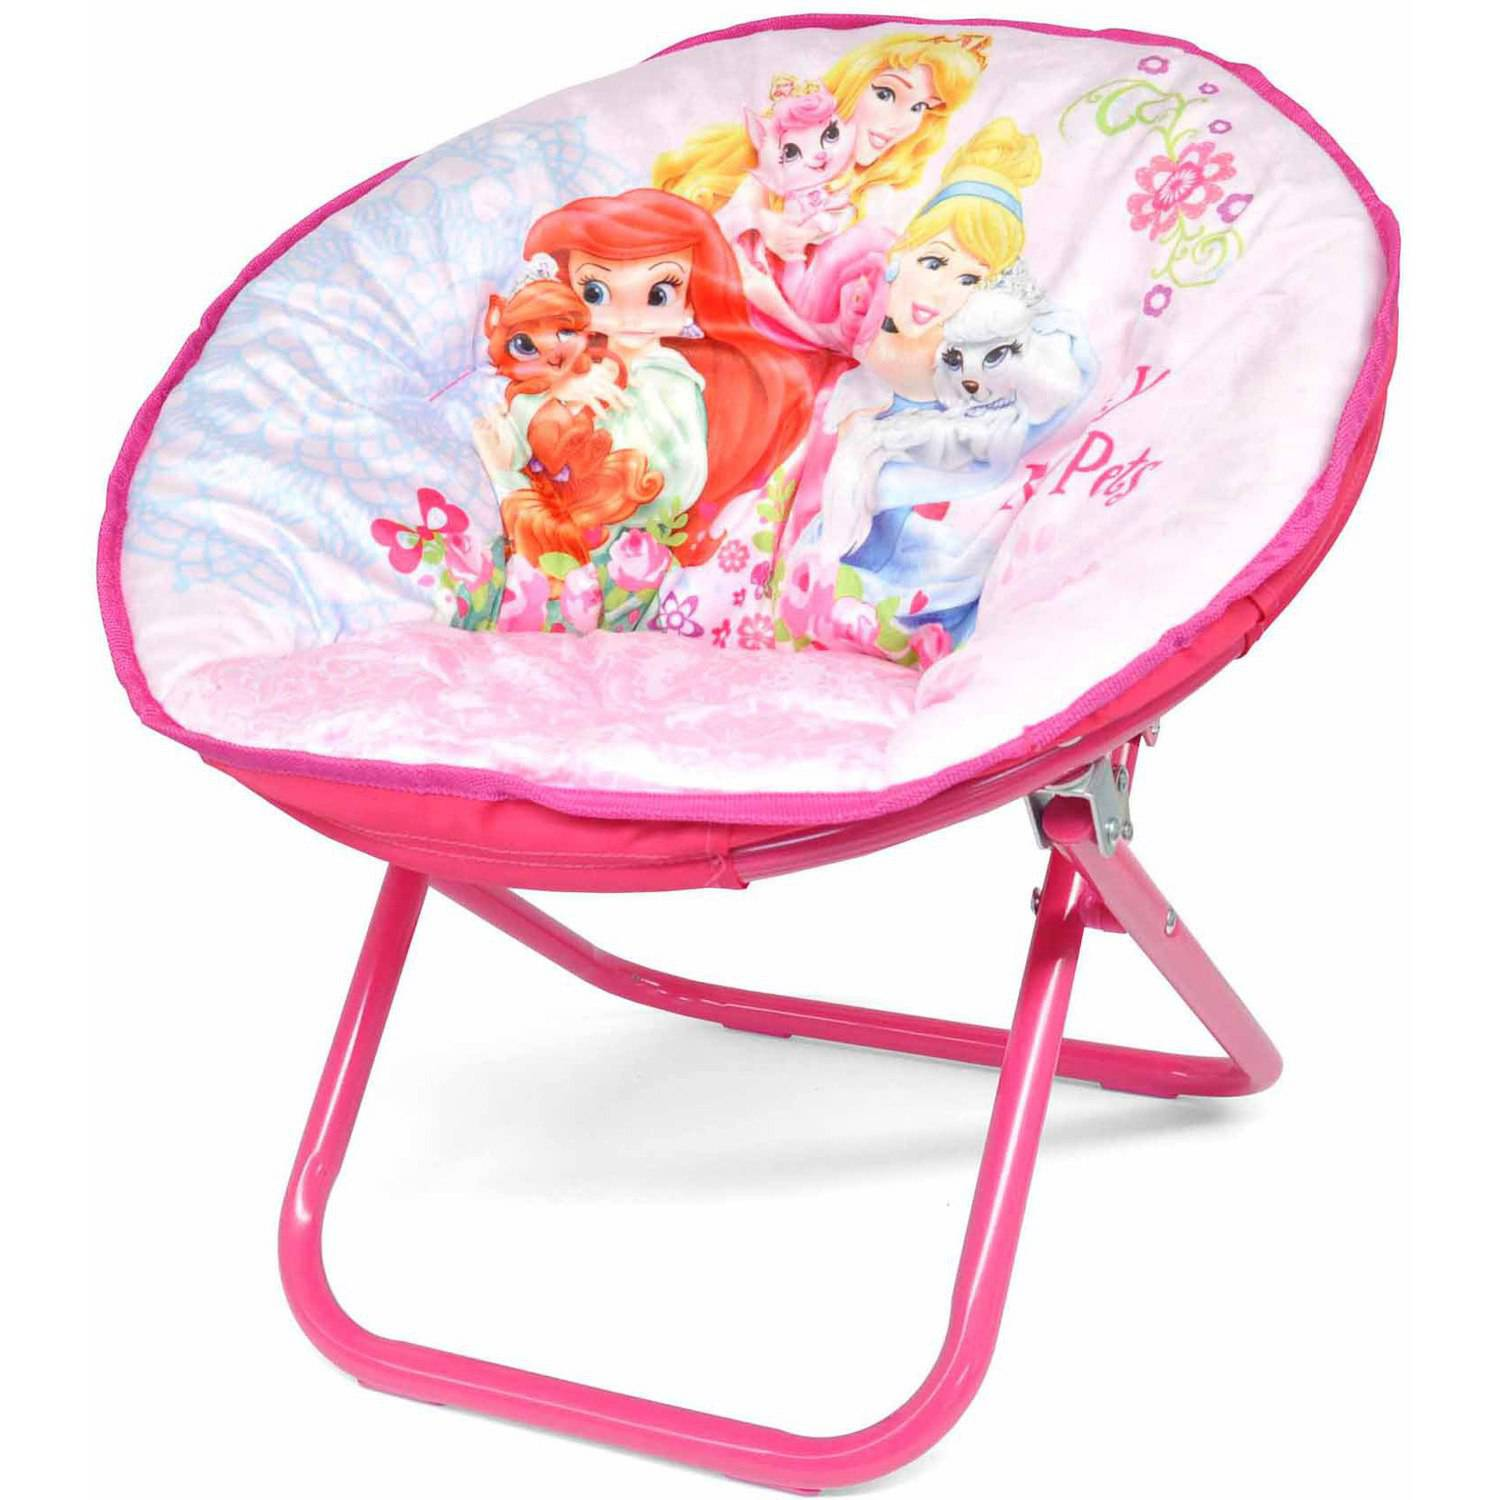 Disney Palace Pets Mini Saucer Chair